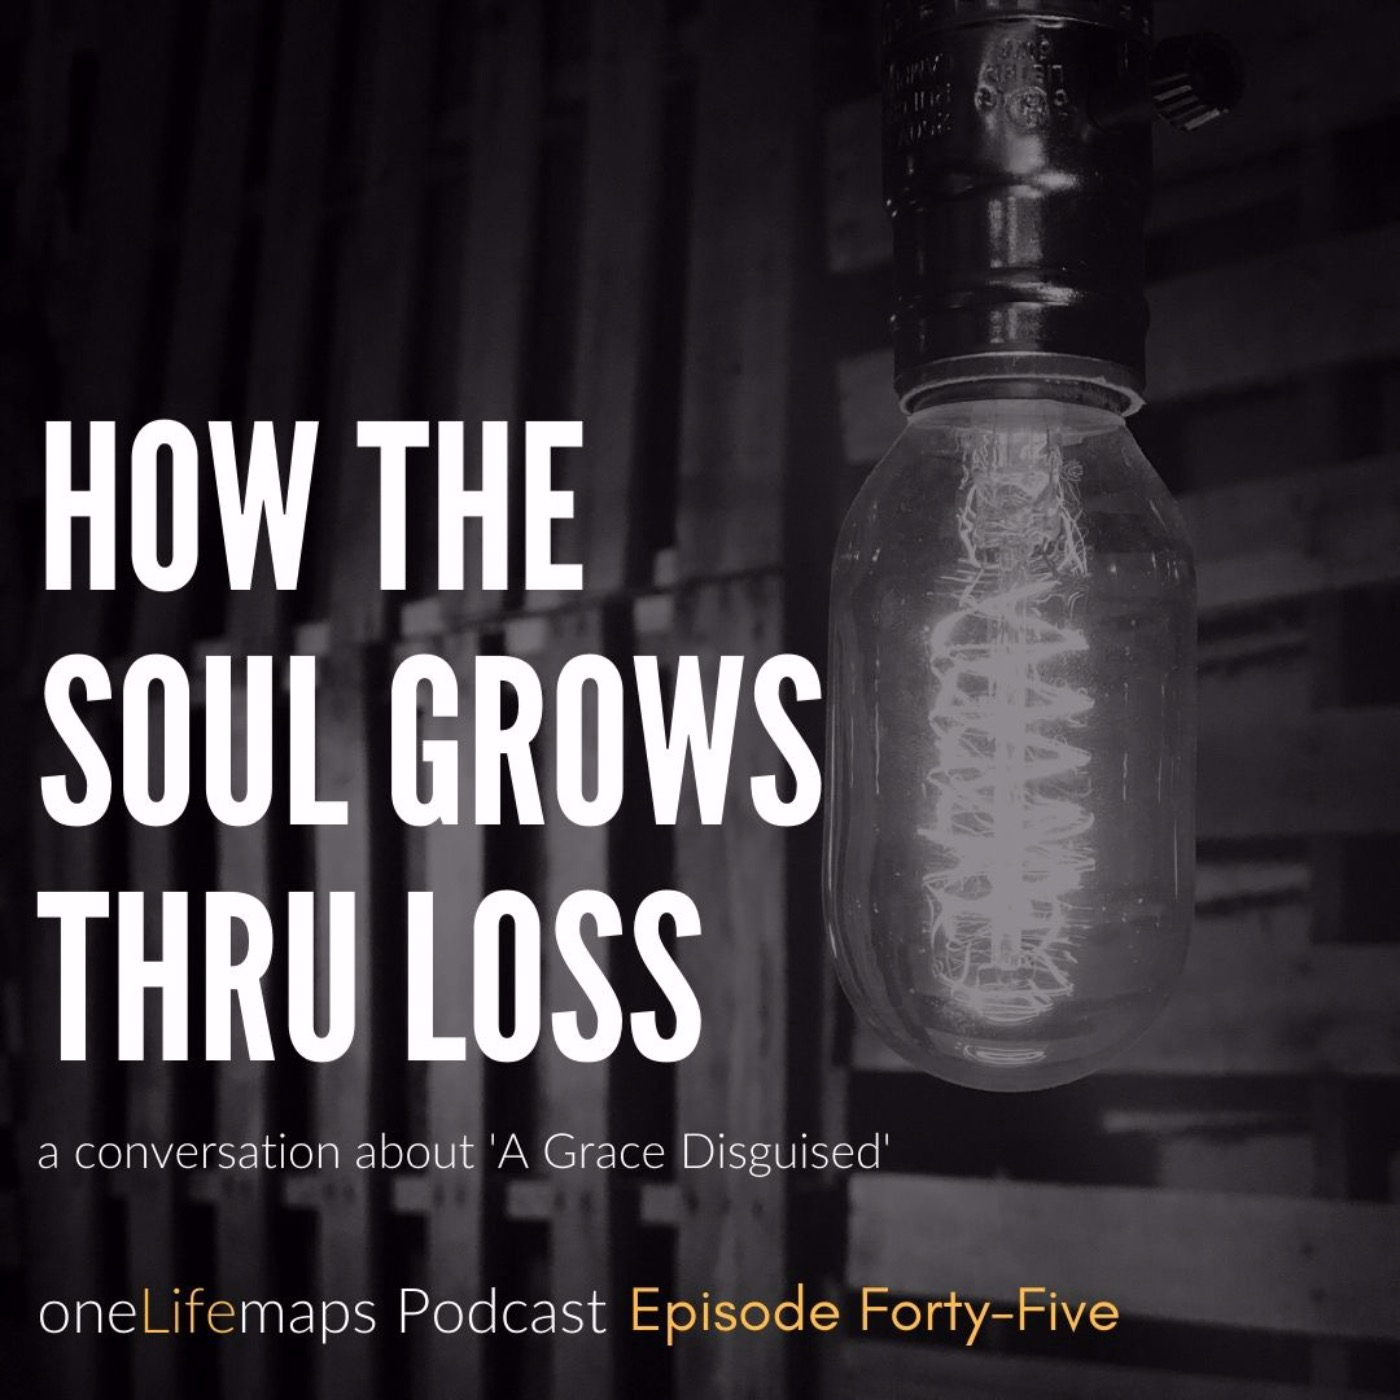 How the Soul Grows Thru Loss